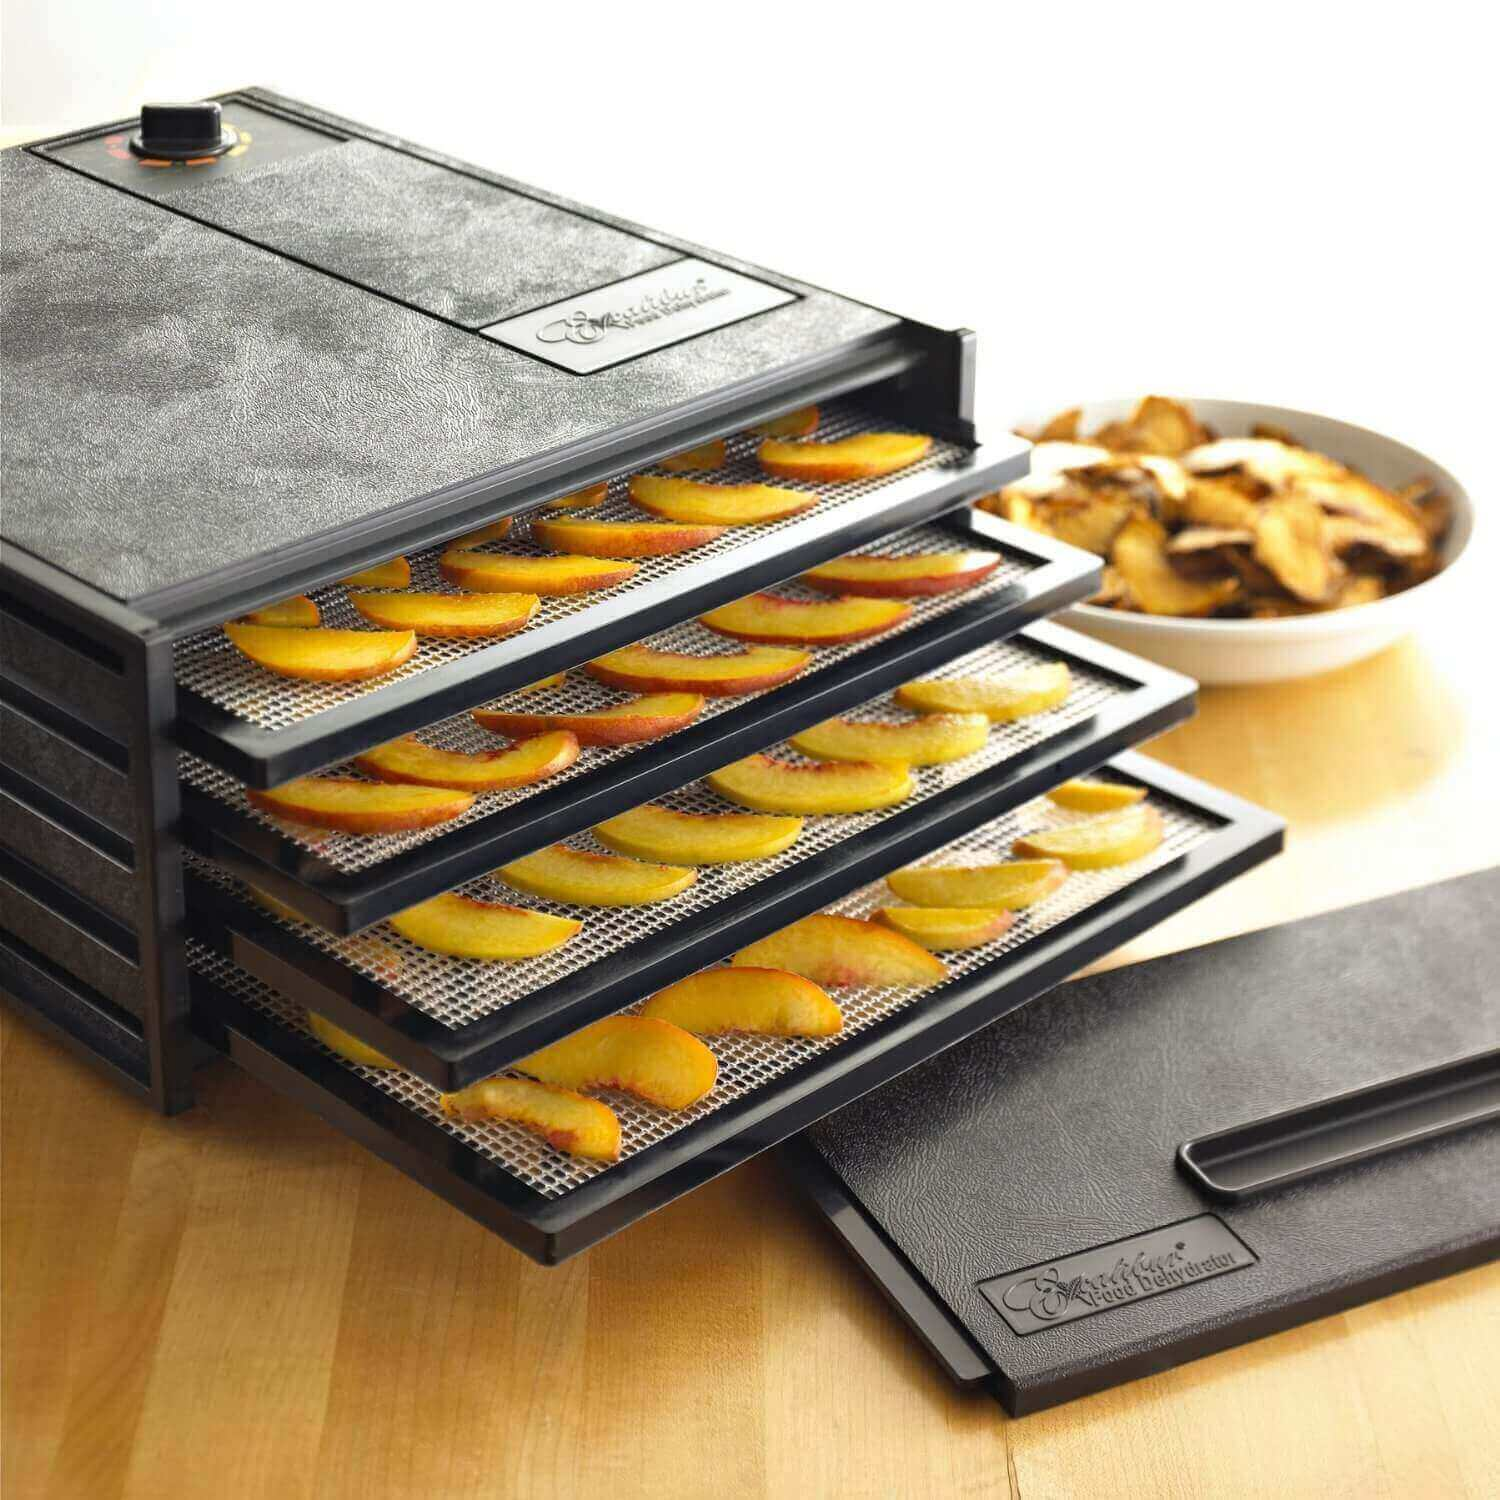 Excalibur 4400 4 tray dehydrator with fruit placed on the trays.